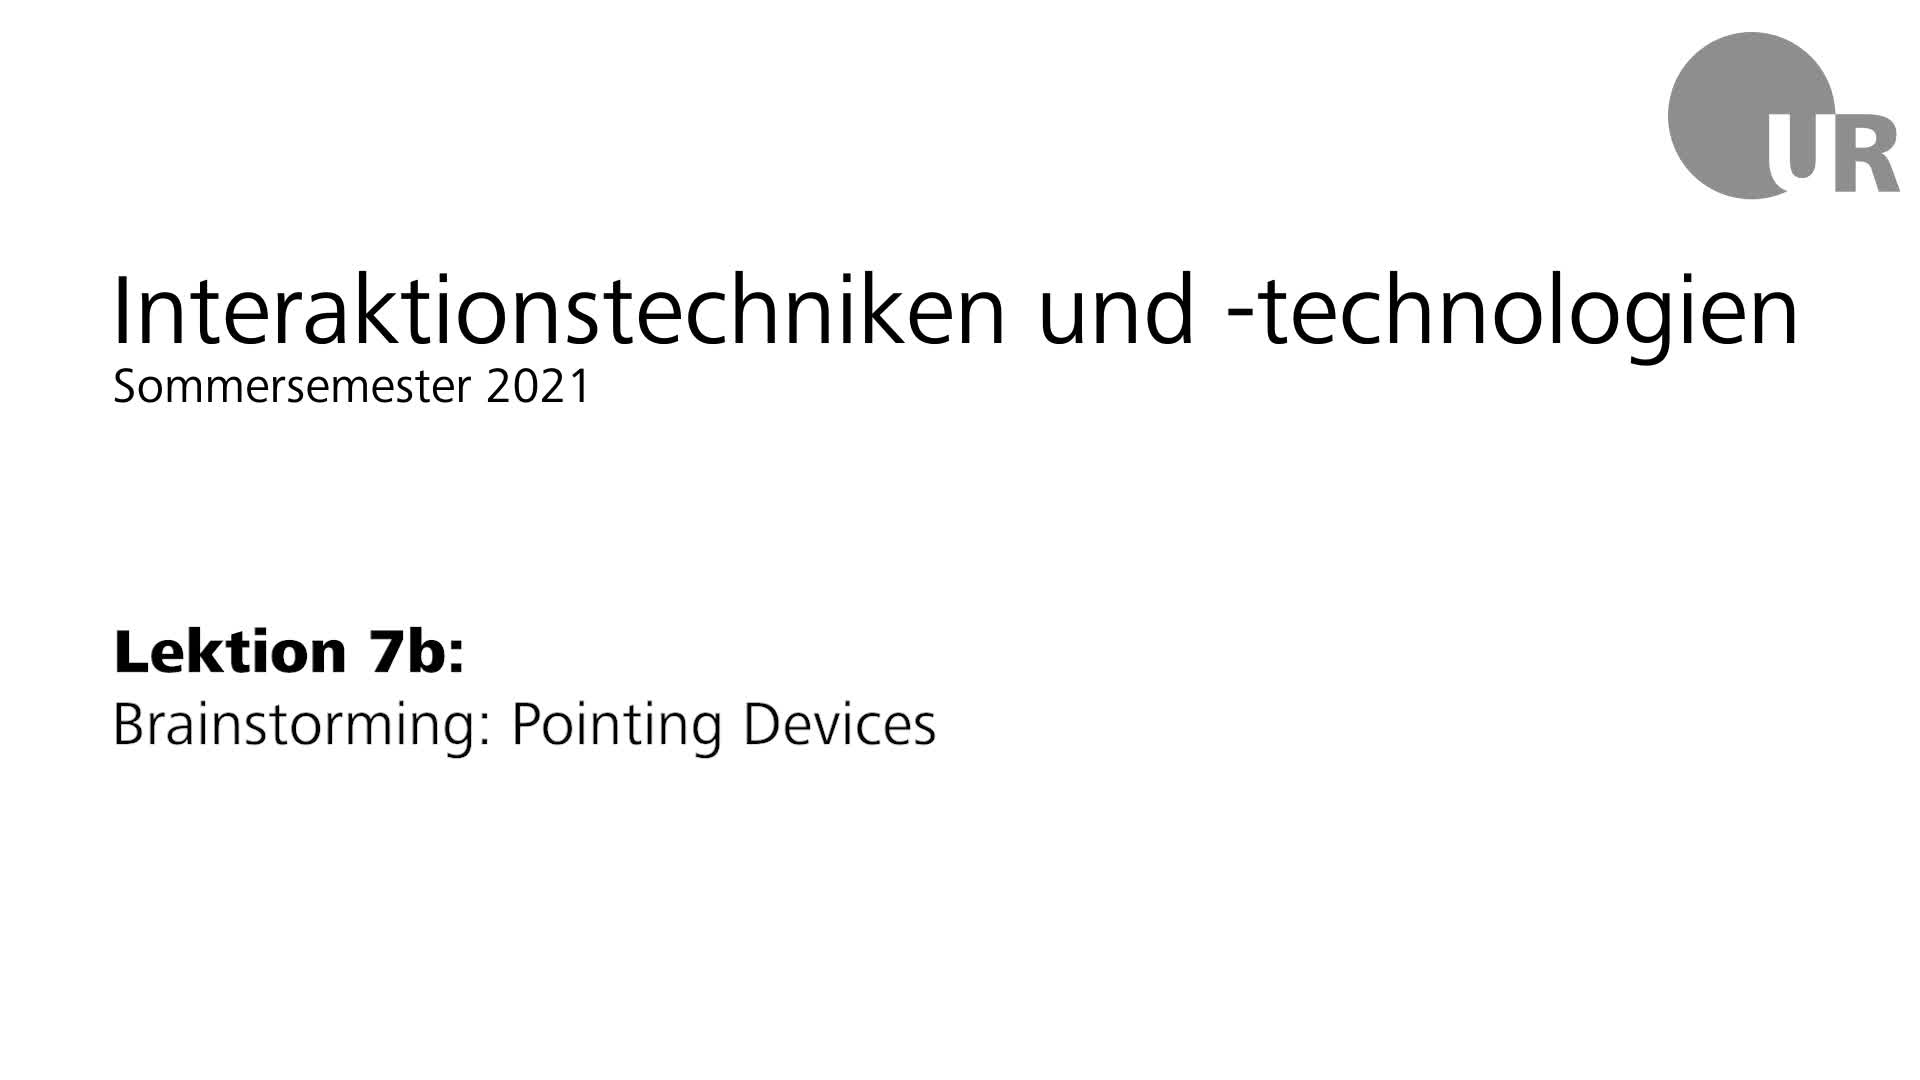 Lektion 7b: Brainstorming: Pointing Devices